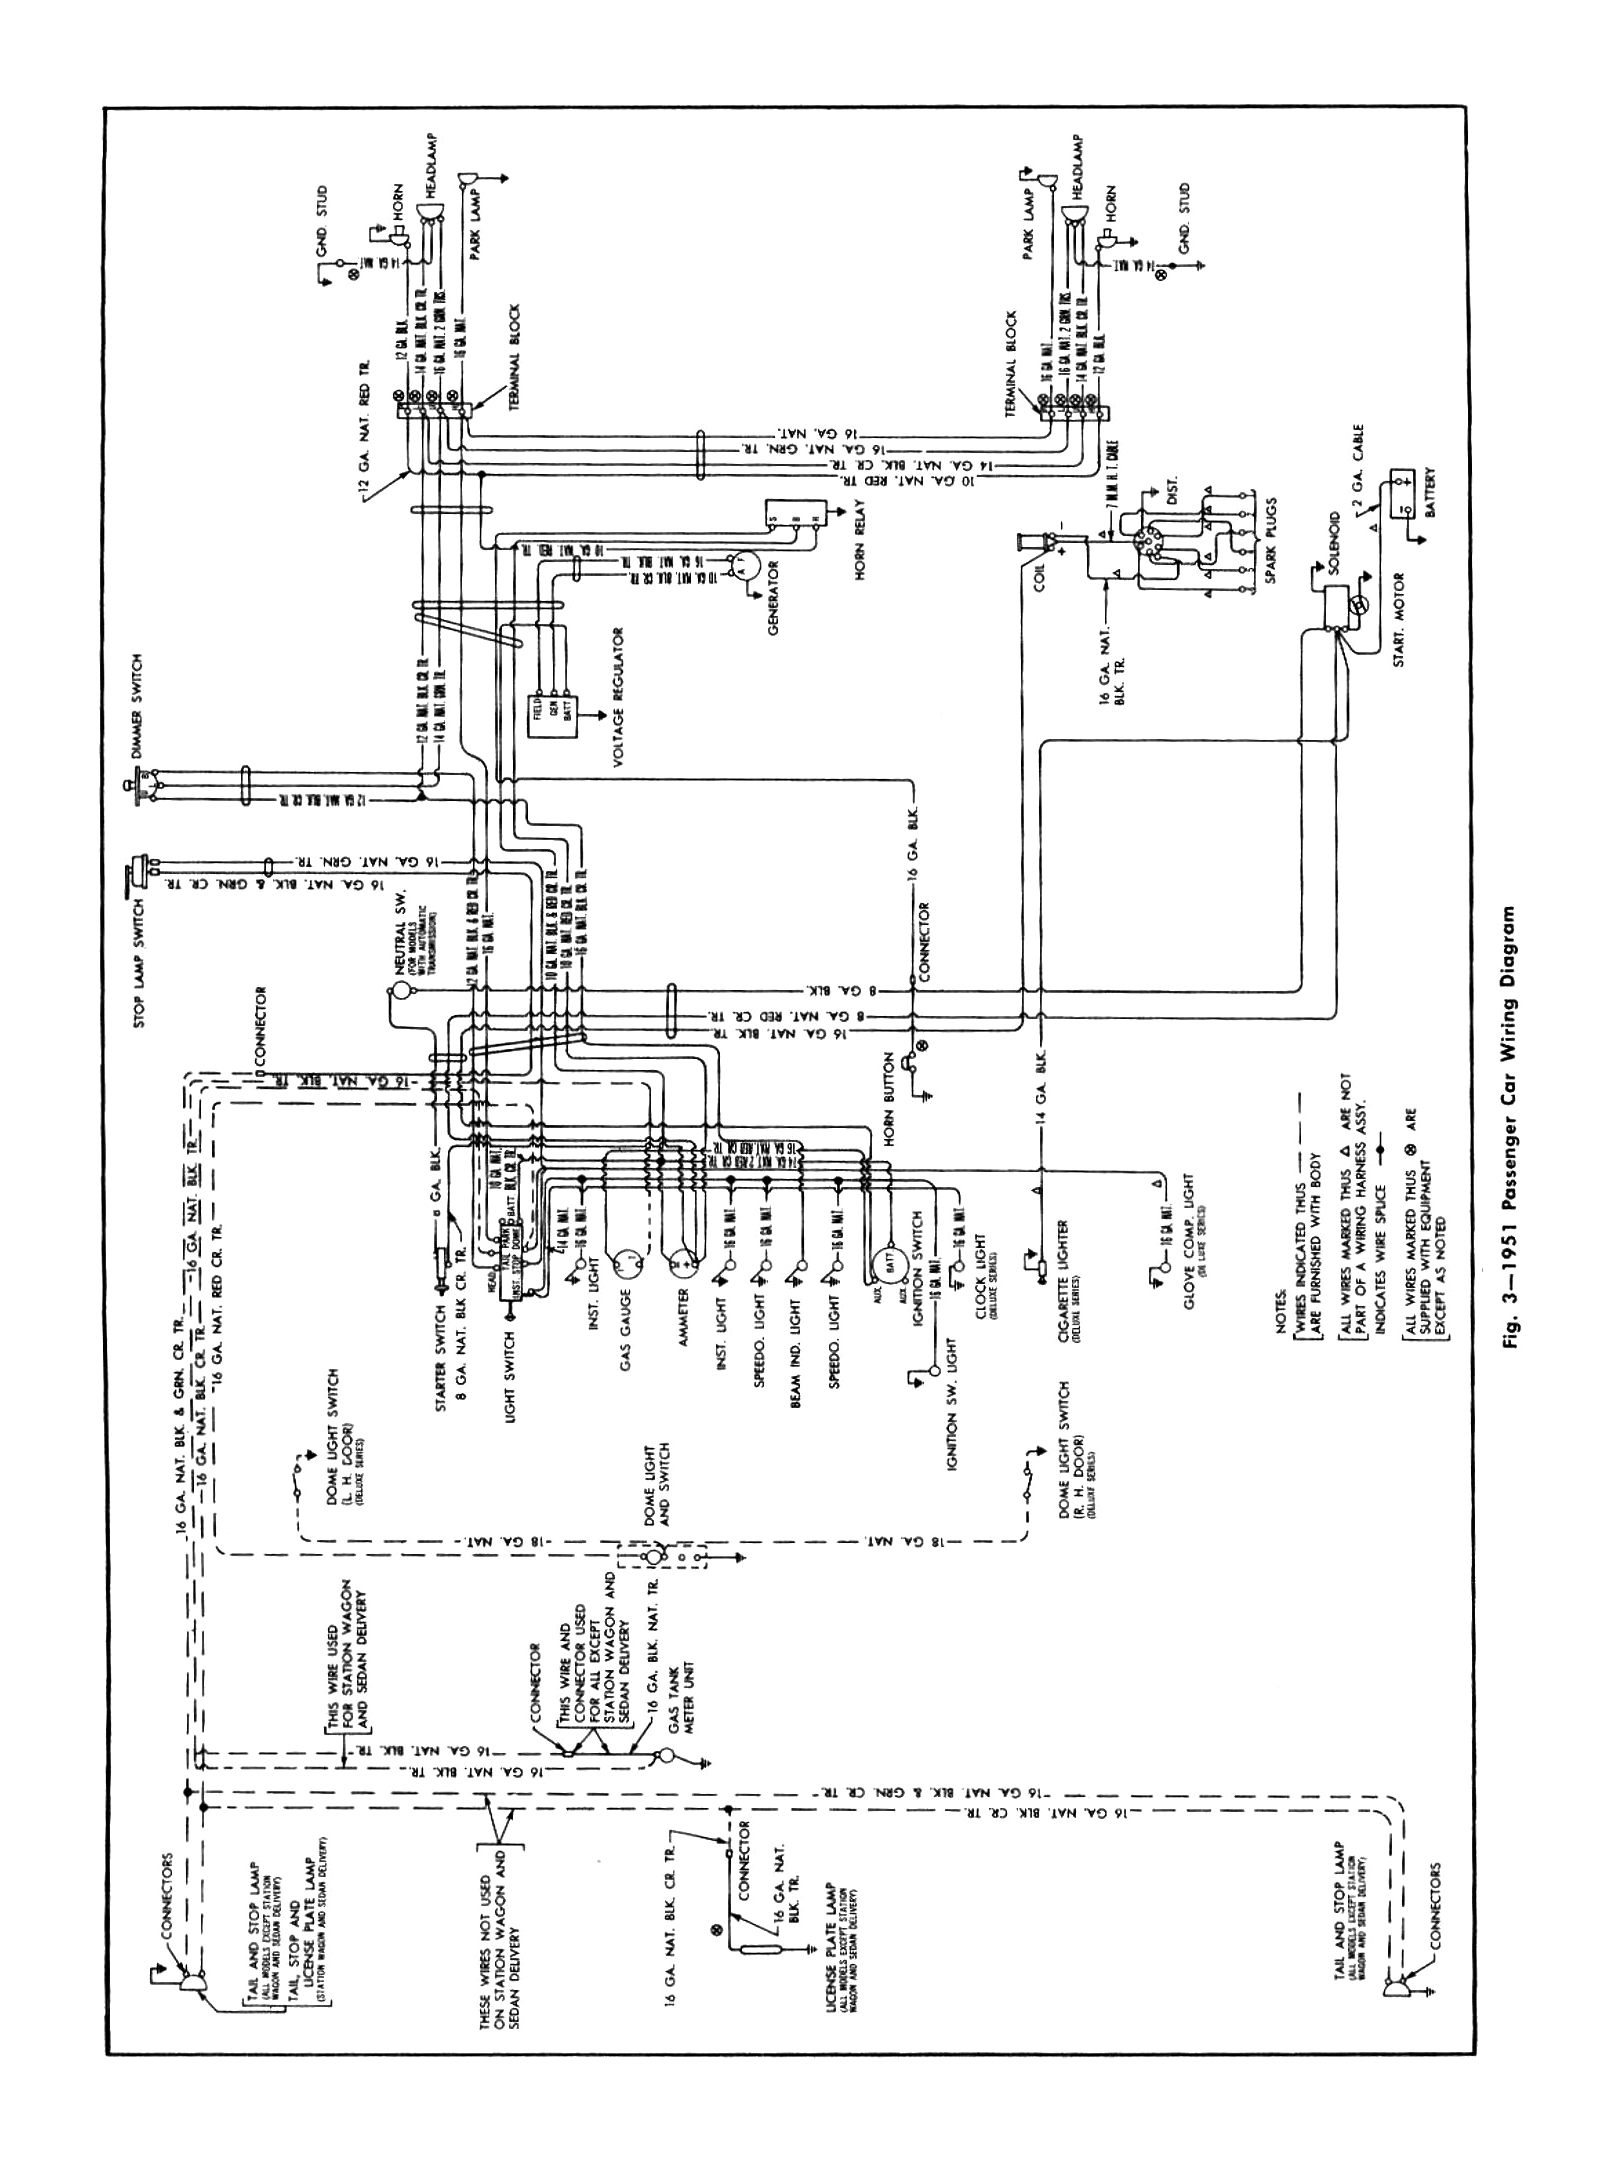 Harness Diagram Additionally Yamaha Wiring Diagram As Well 1988 40 Hp